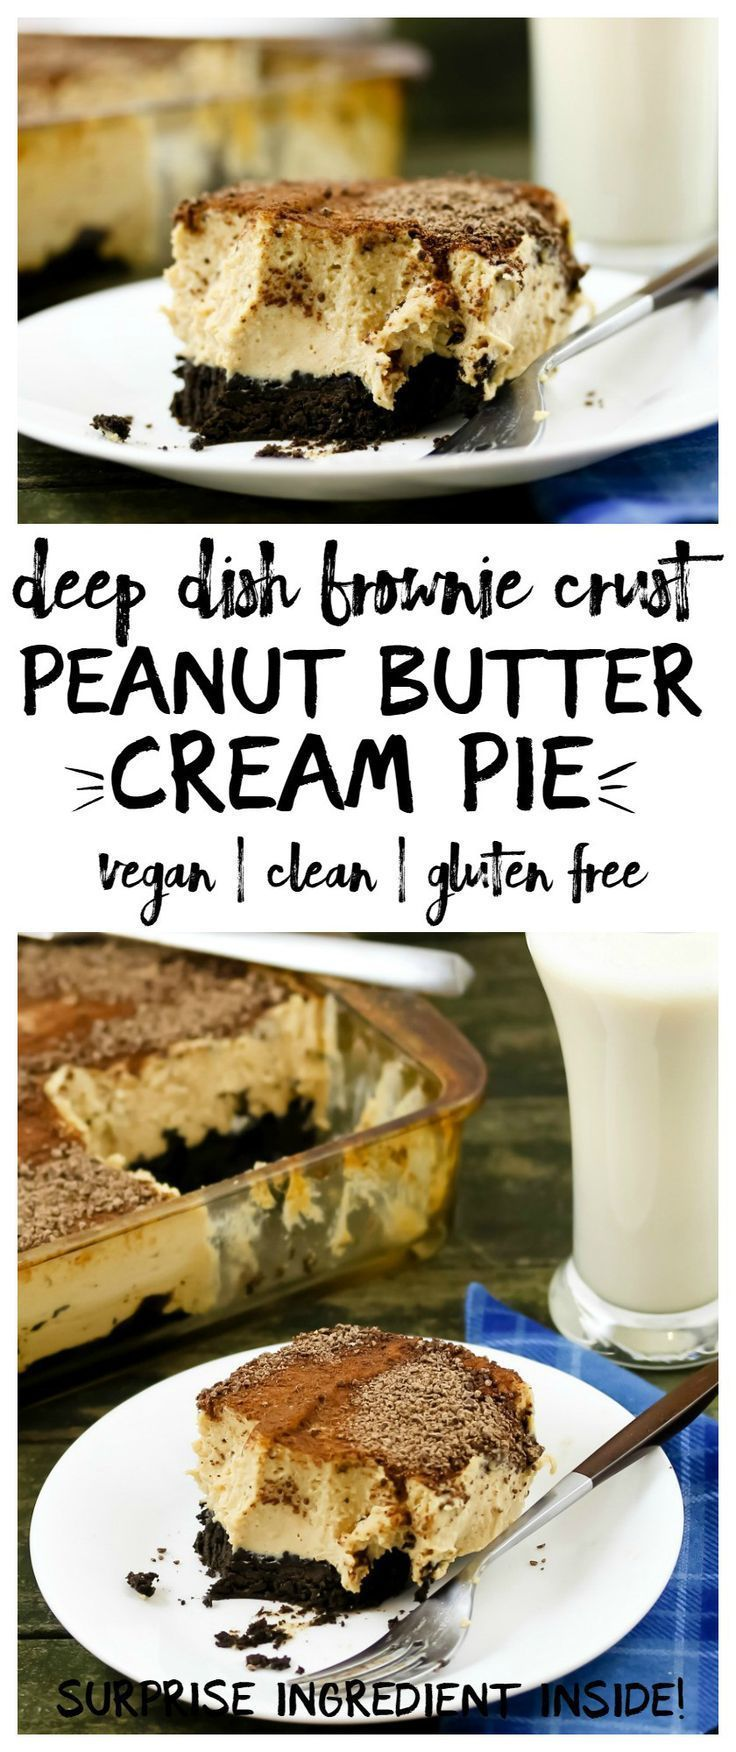 One of my favorite recipes! This thick, rich, peanut buttery deep dish peanut butter cream pie has a fudge brownie crust. Hard to believe this is vegan and gluten free, and even has a surprise healthy ingredient.